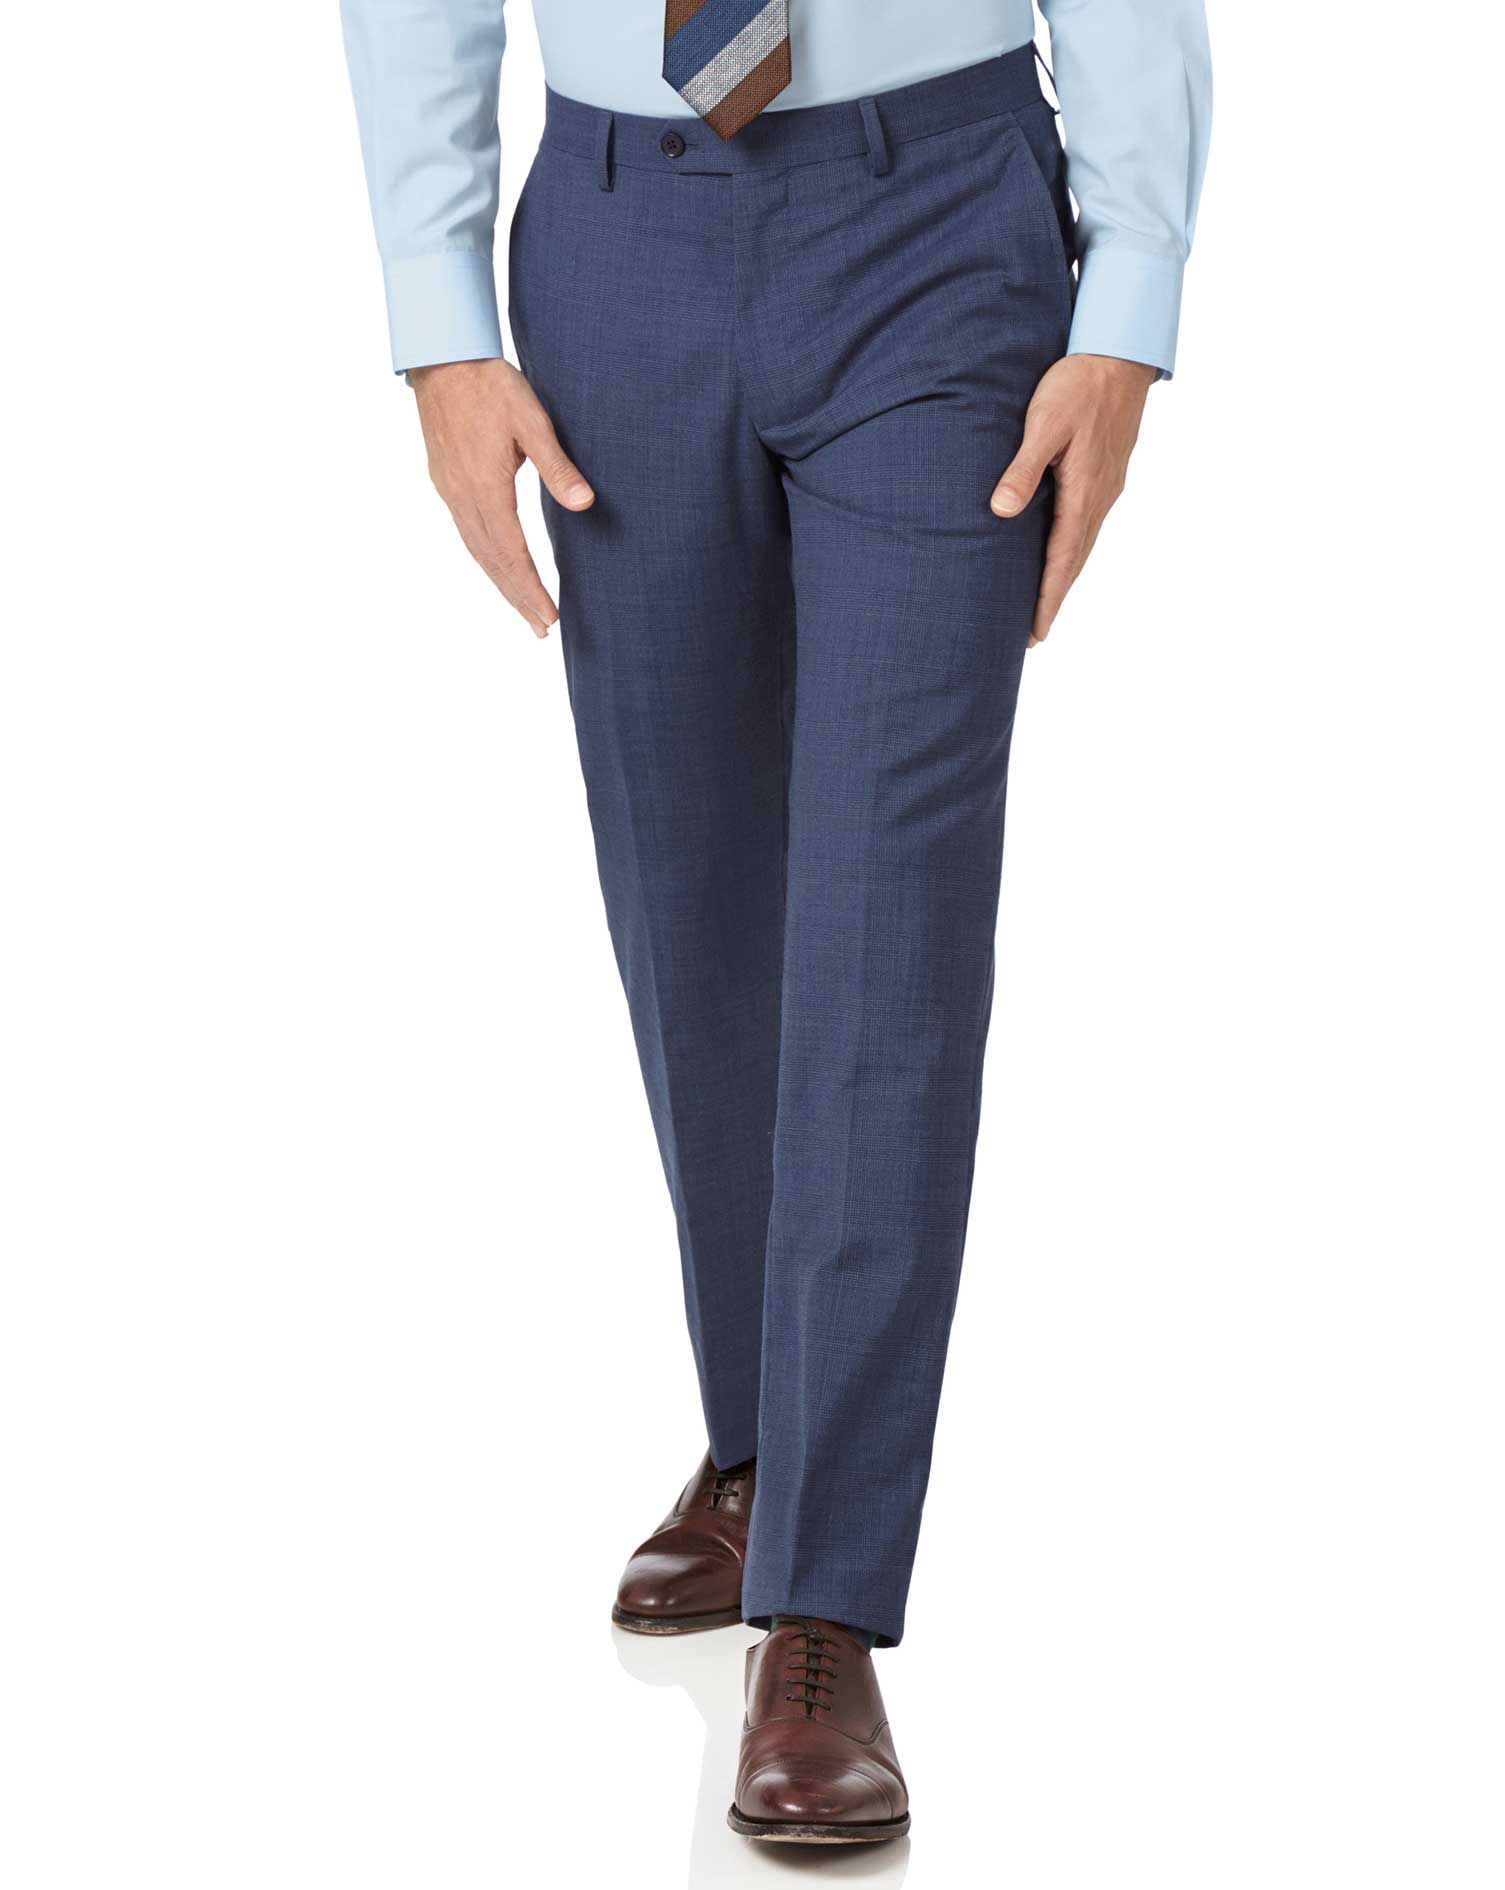 Image of Charles Tyrwhitt Airforce Blue Slim Fit Panama Check Business Suit Trousers Size W102 L97 by Charles Tyrwhitt